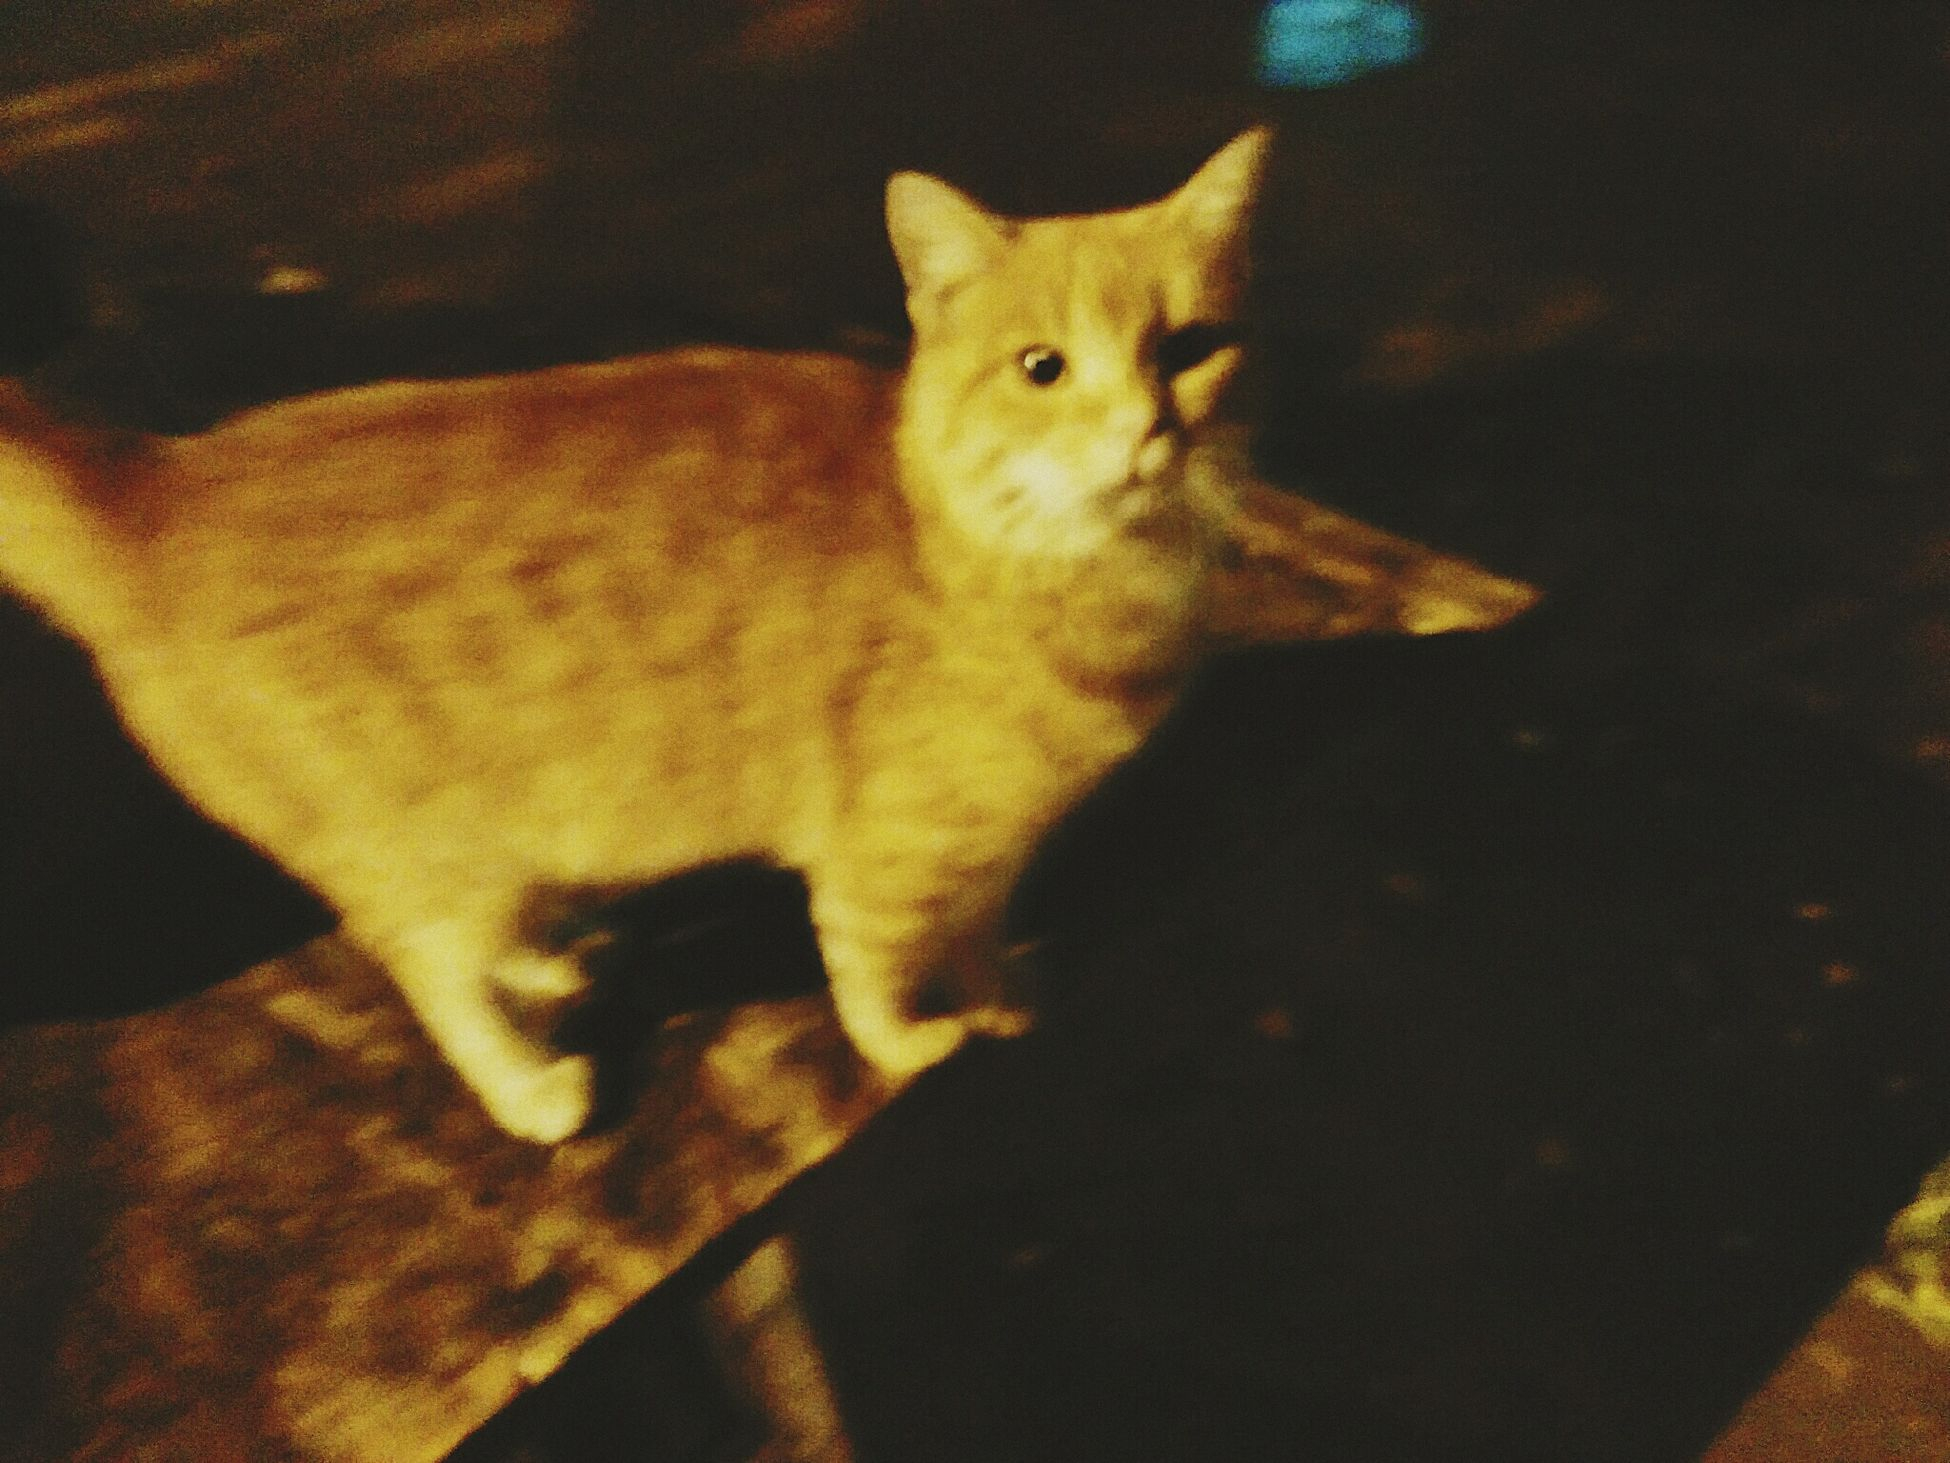 Cat...sweet cat. Homeless Odessa Cat Homeless Sad Red_cat Ukraine One Animal No People Night Don't_buy_take_from_shelter